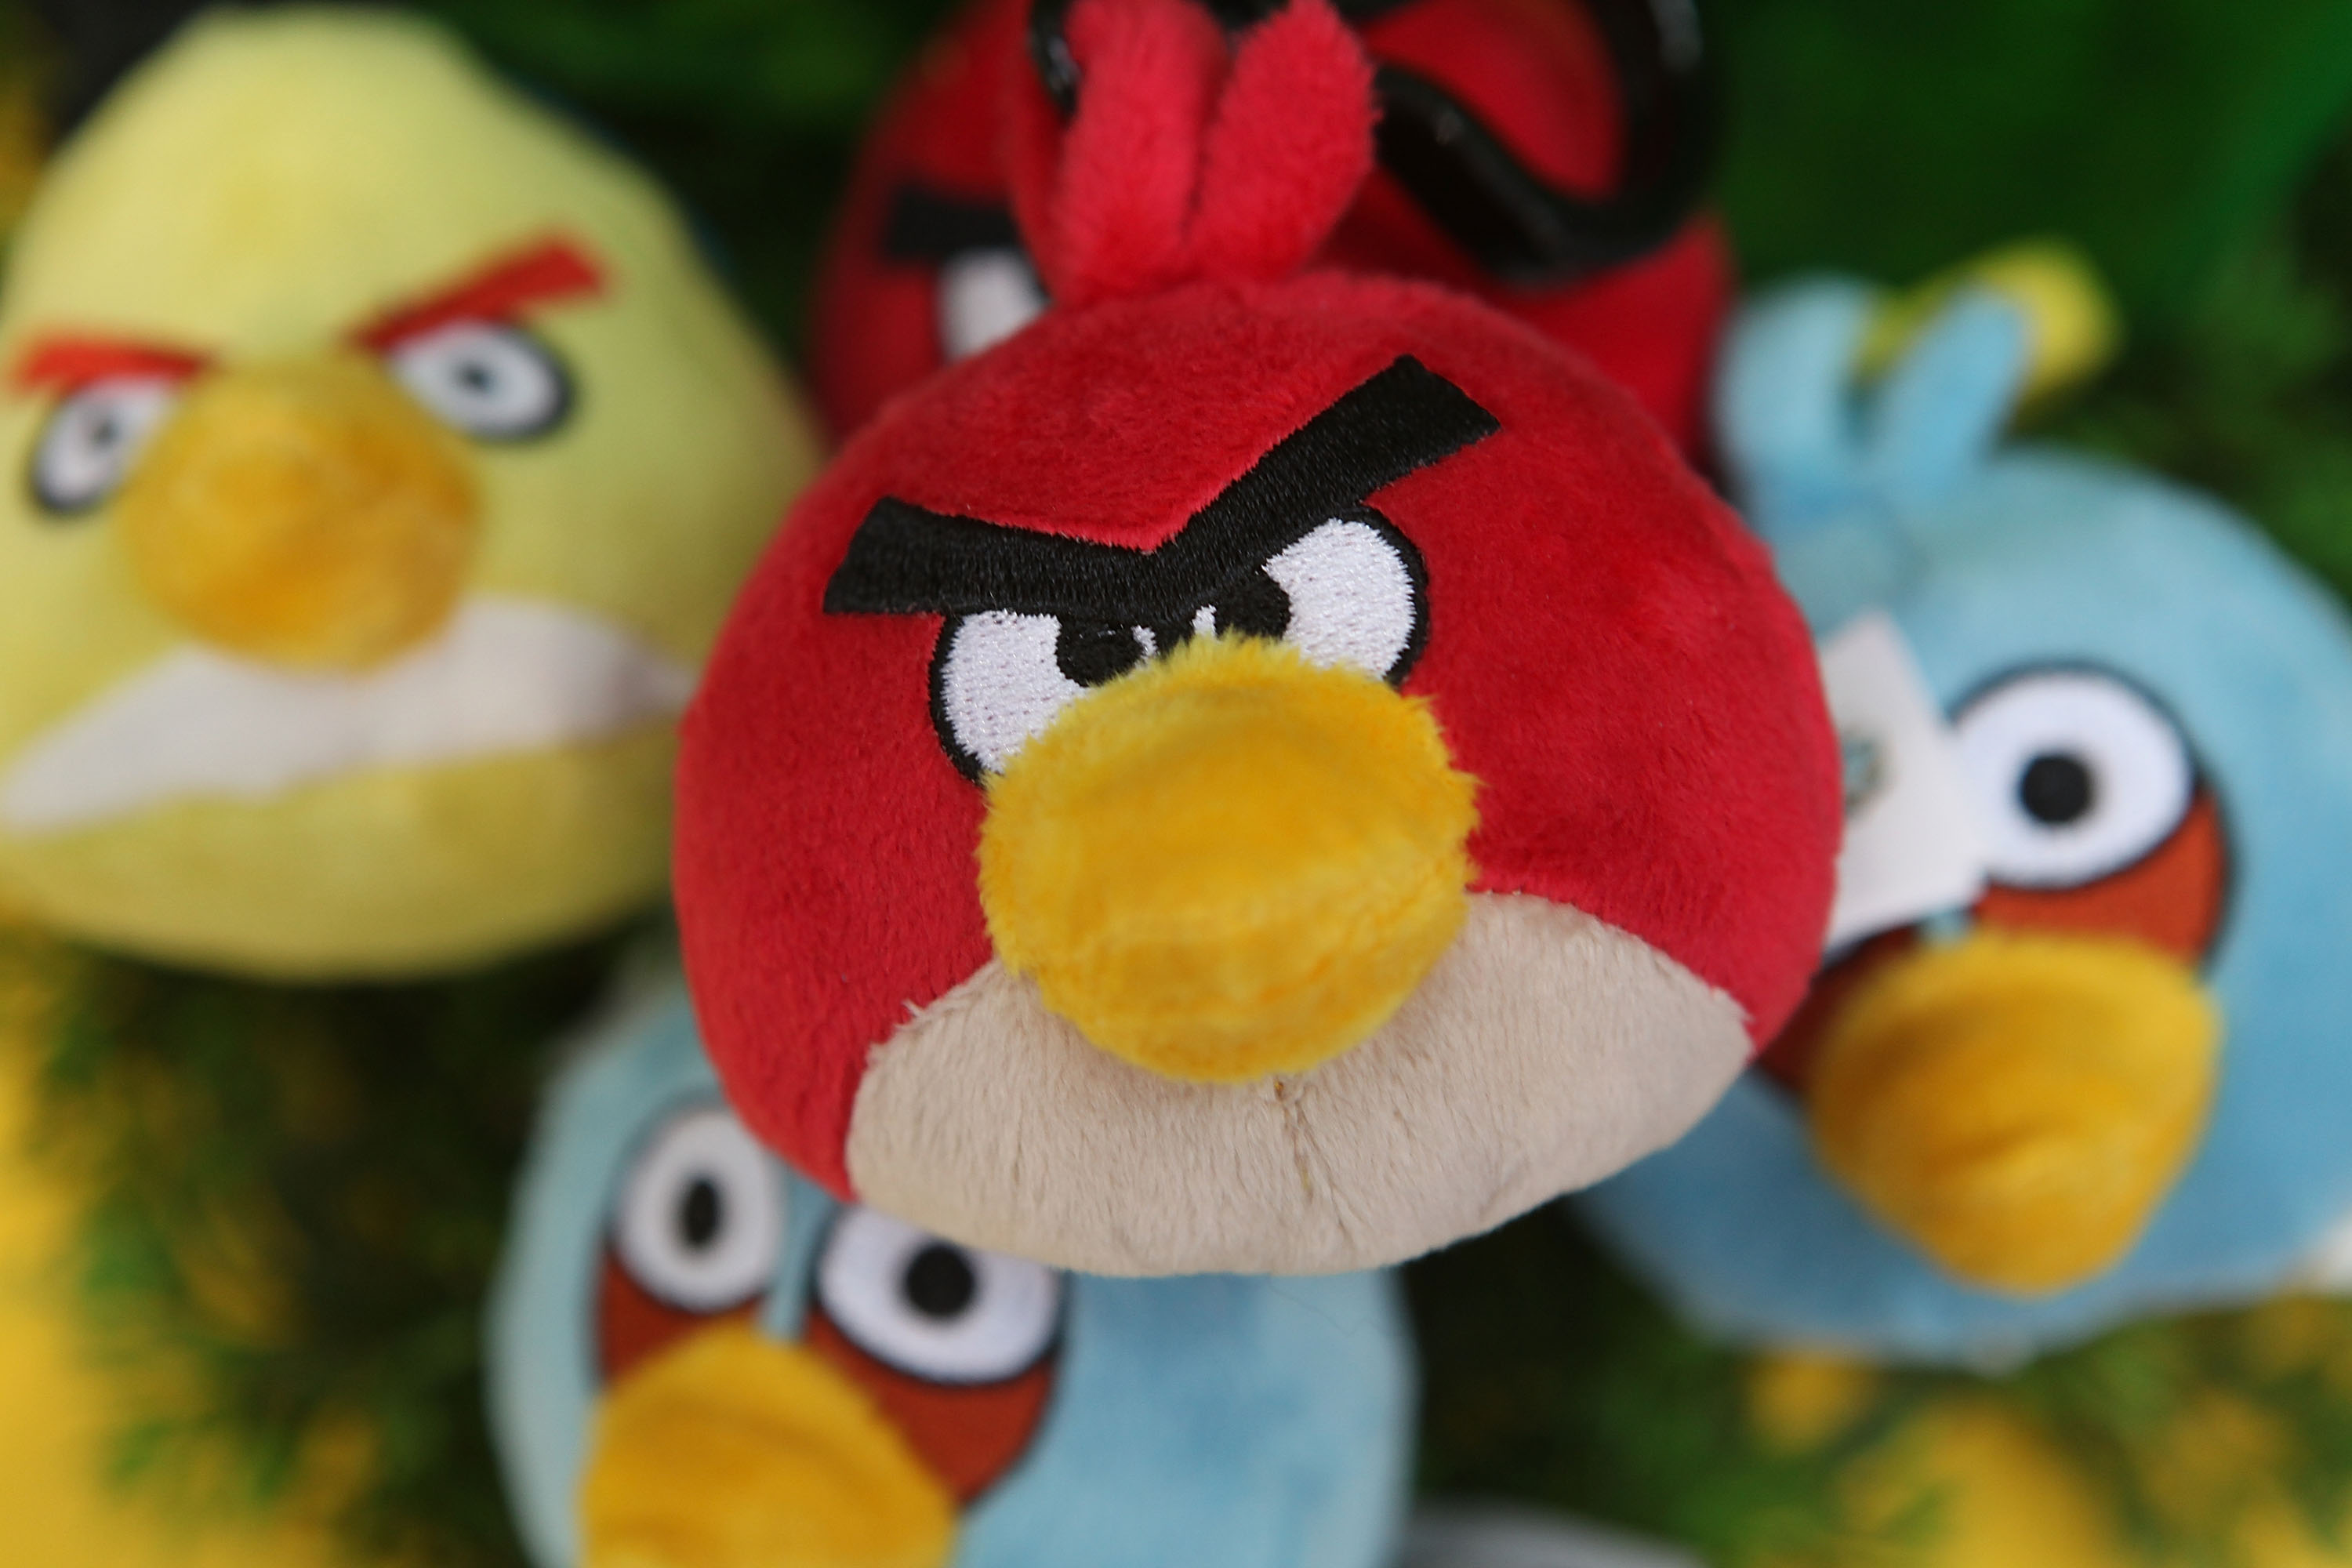 Angry Birds plush toys on display at the Toy Fair 2011 at Olympia Exhibition Centre on Jan. 25, 2011 in London, England.